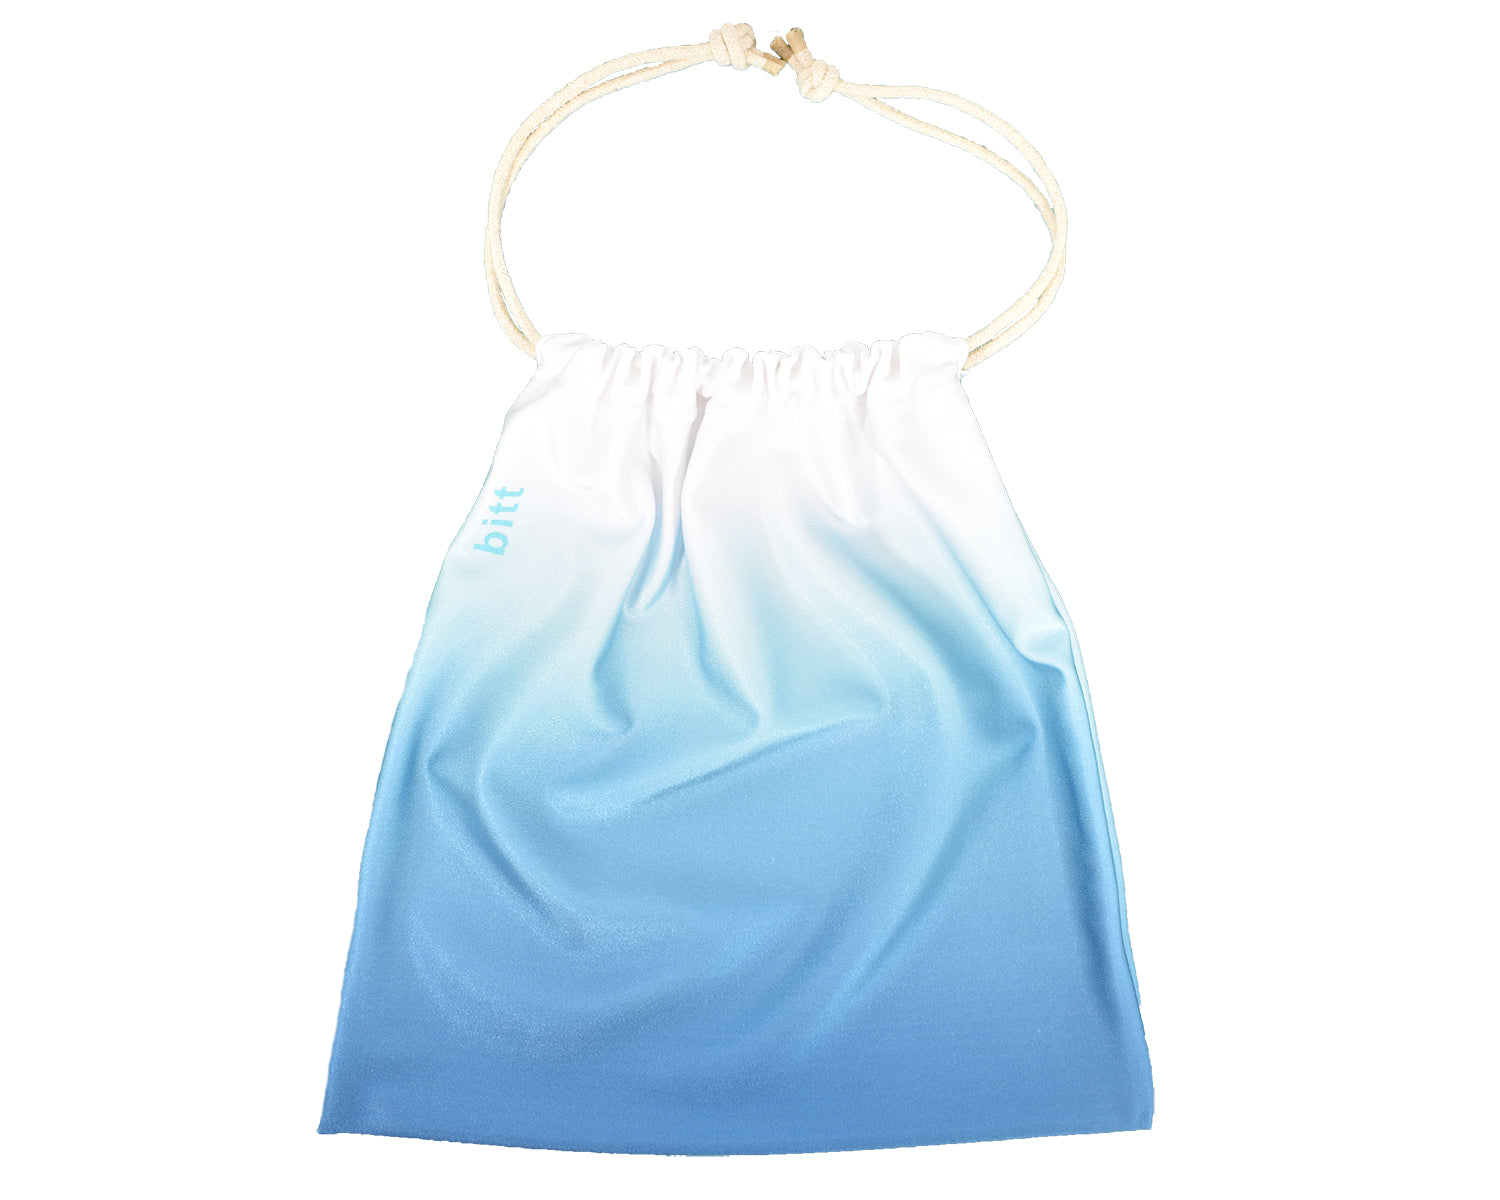 Gymnastics Grip Bag Turquoise Drawstring Bag